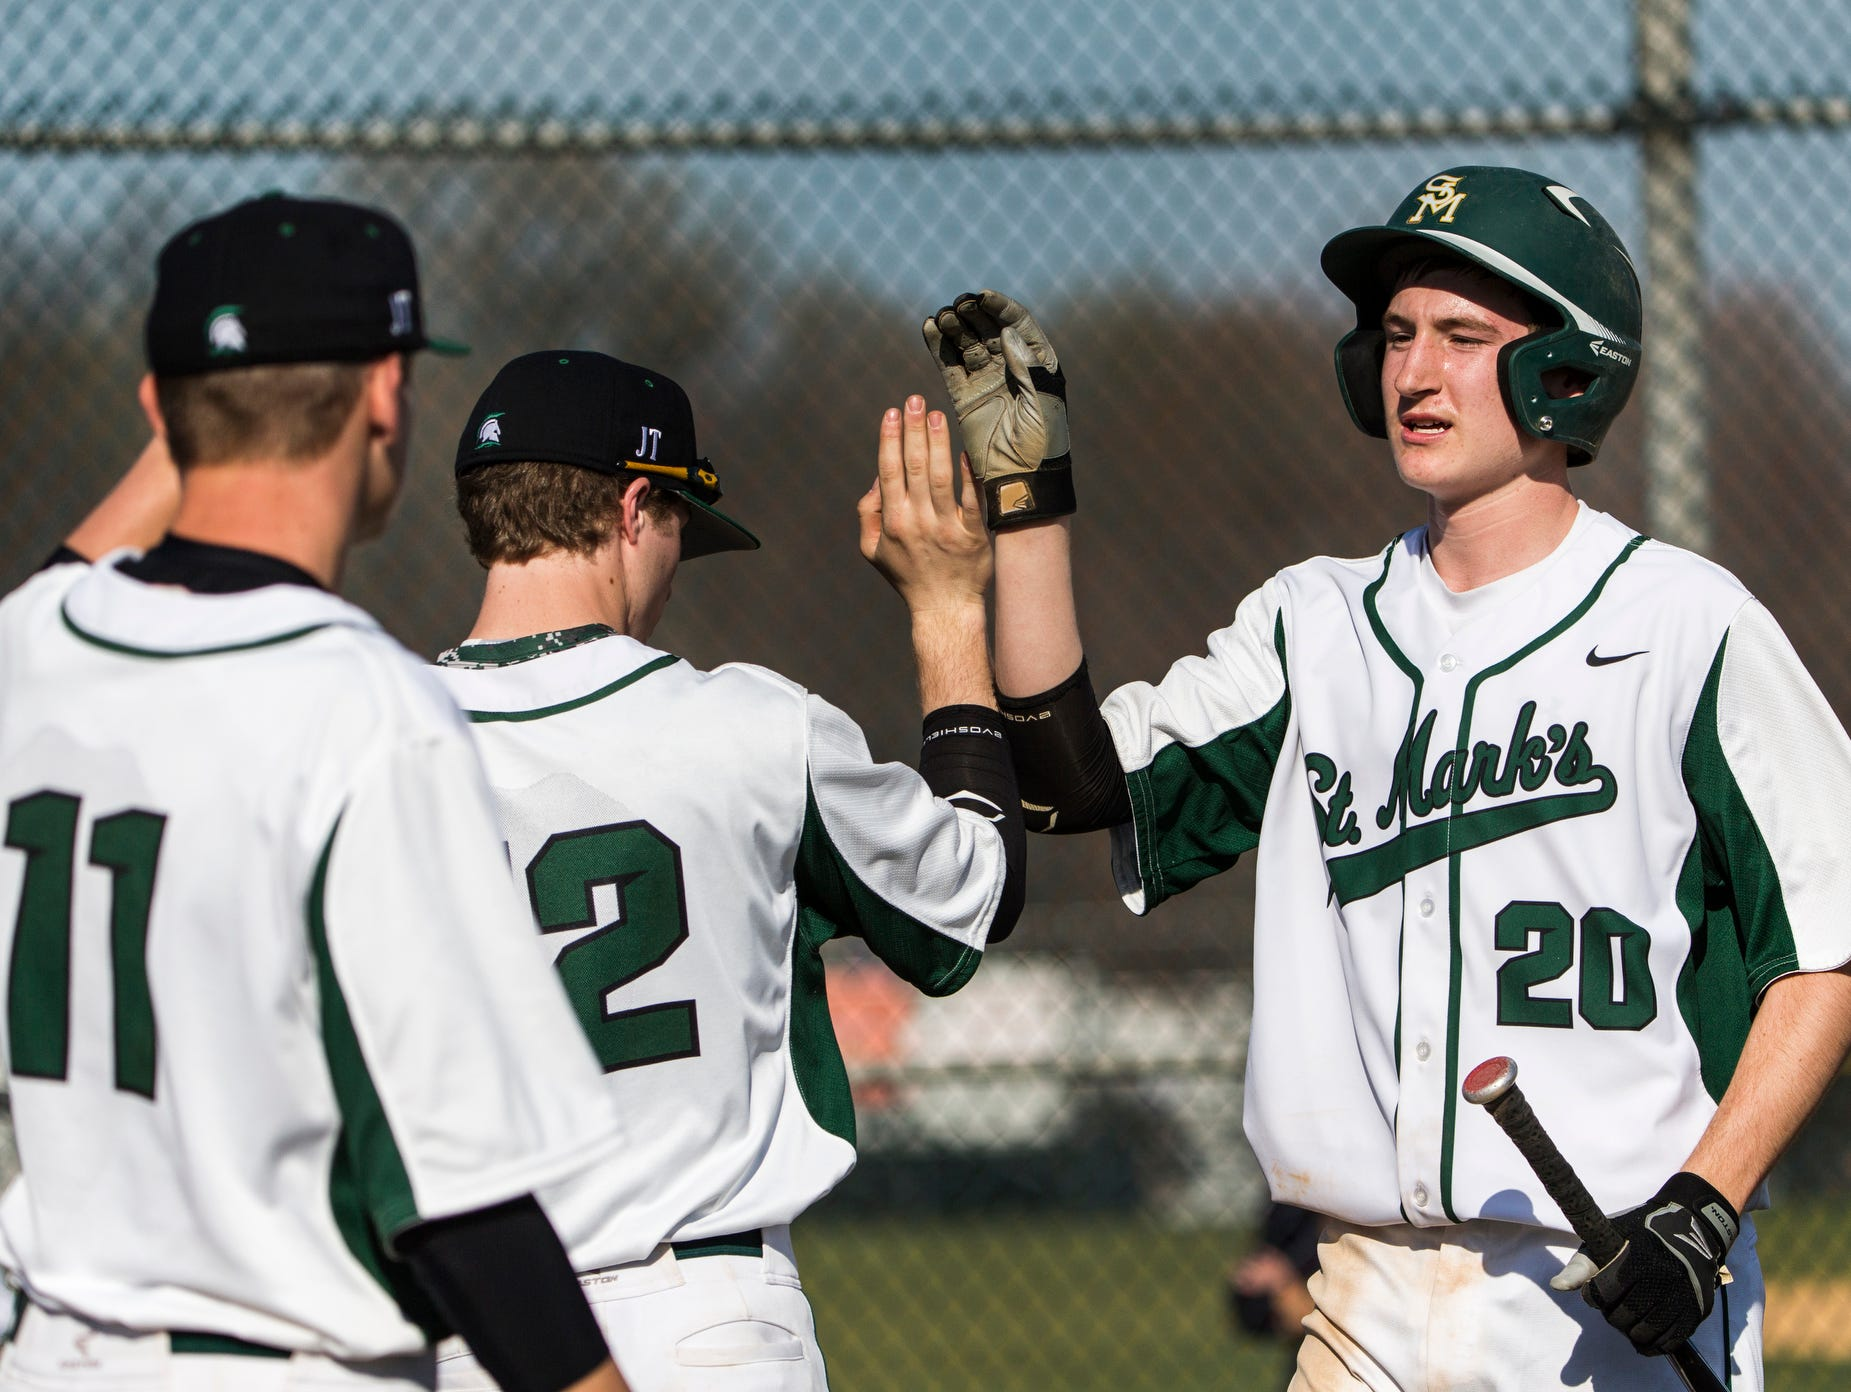 St. Mark's Christopher Ludman (No. 20) celebrates with teammates after scoring a run in St. Mark's 12-0 win over Hodgson at St. Mark's High School on Wednesday afternoon.